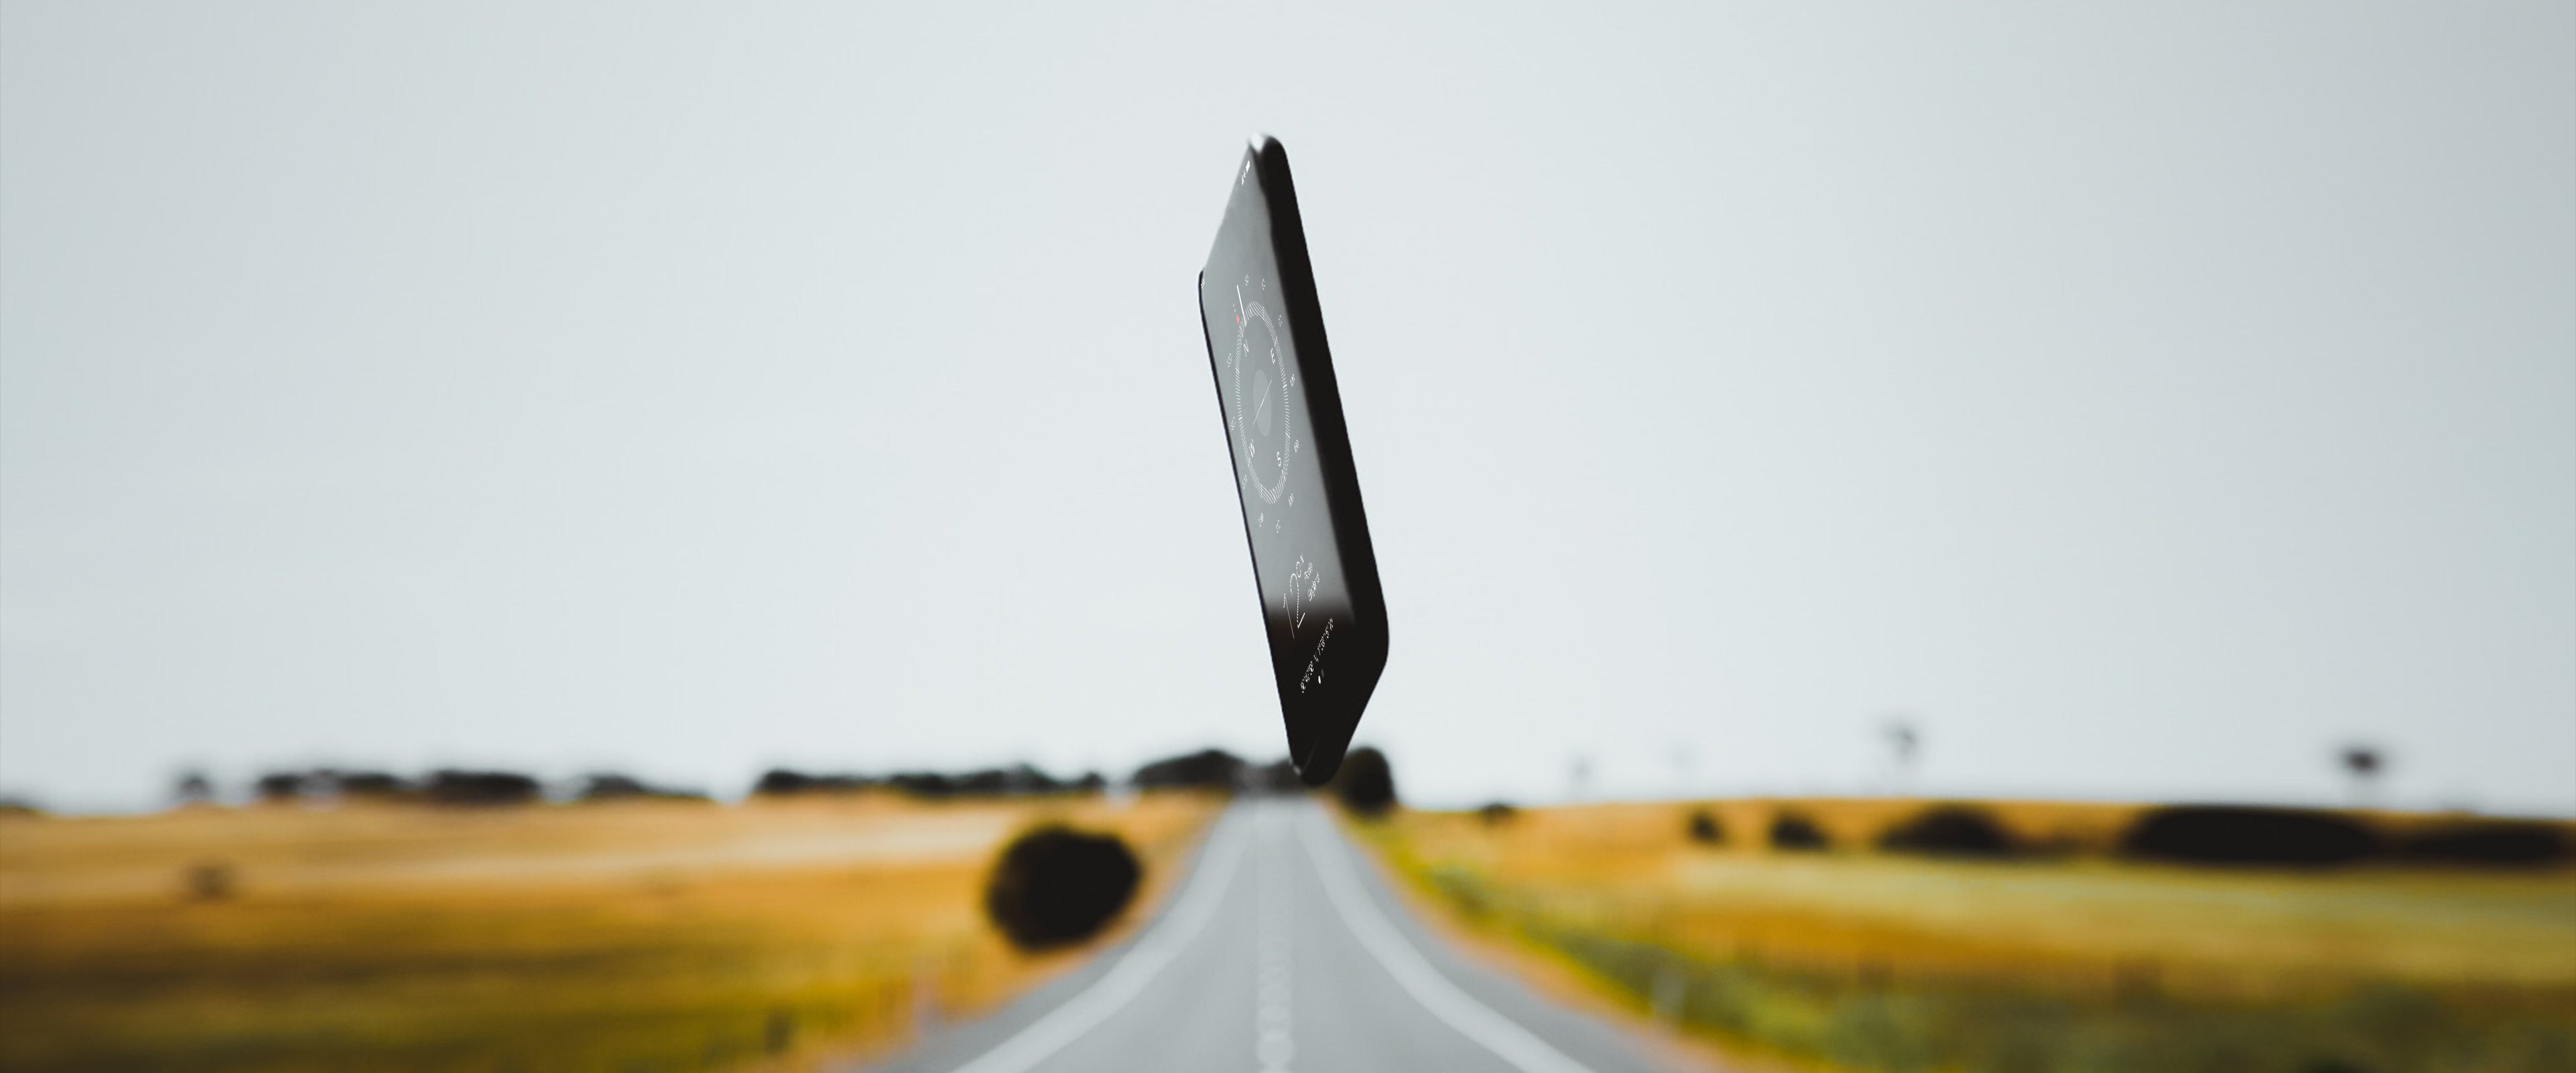 A phone falling to the ground on a country road